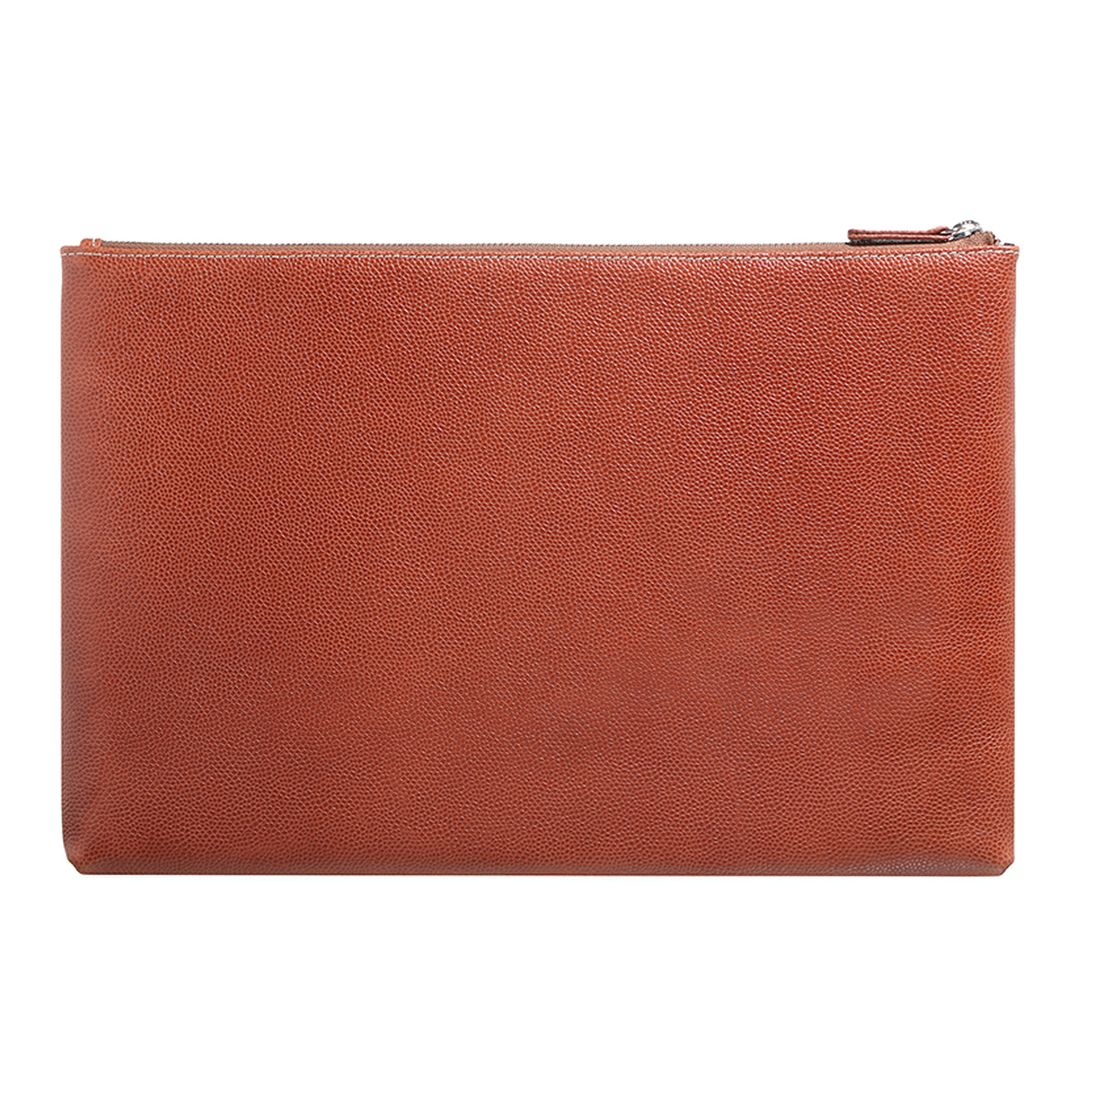 Notebook Case - Camel